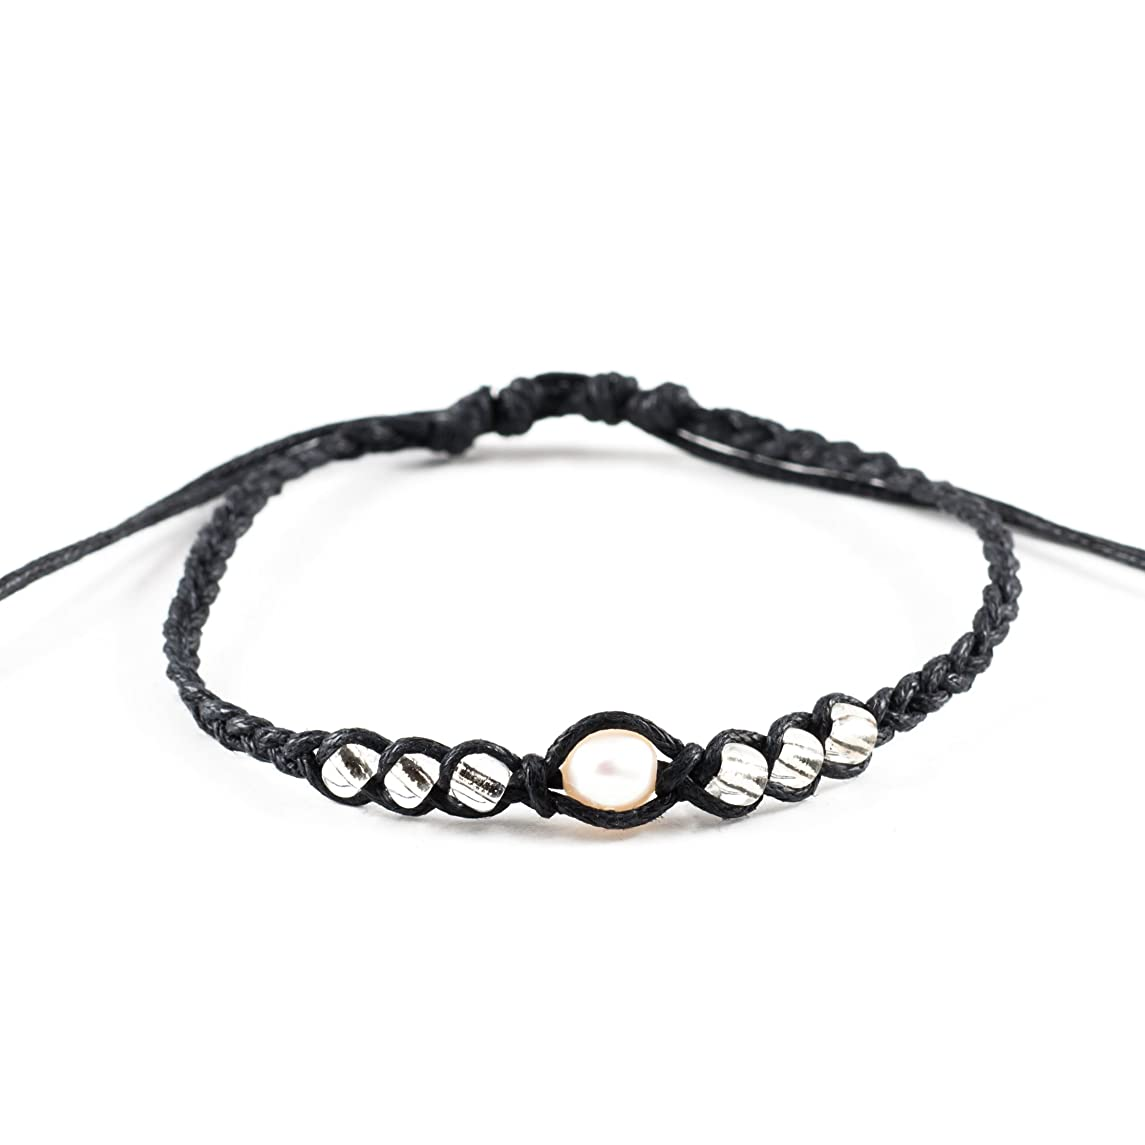 Genuine Cultured Fresh Water Pearl on Adjustable Braided Cord Bracelet with Clear Glass Beads (Black)